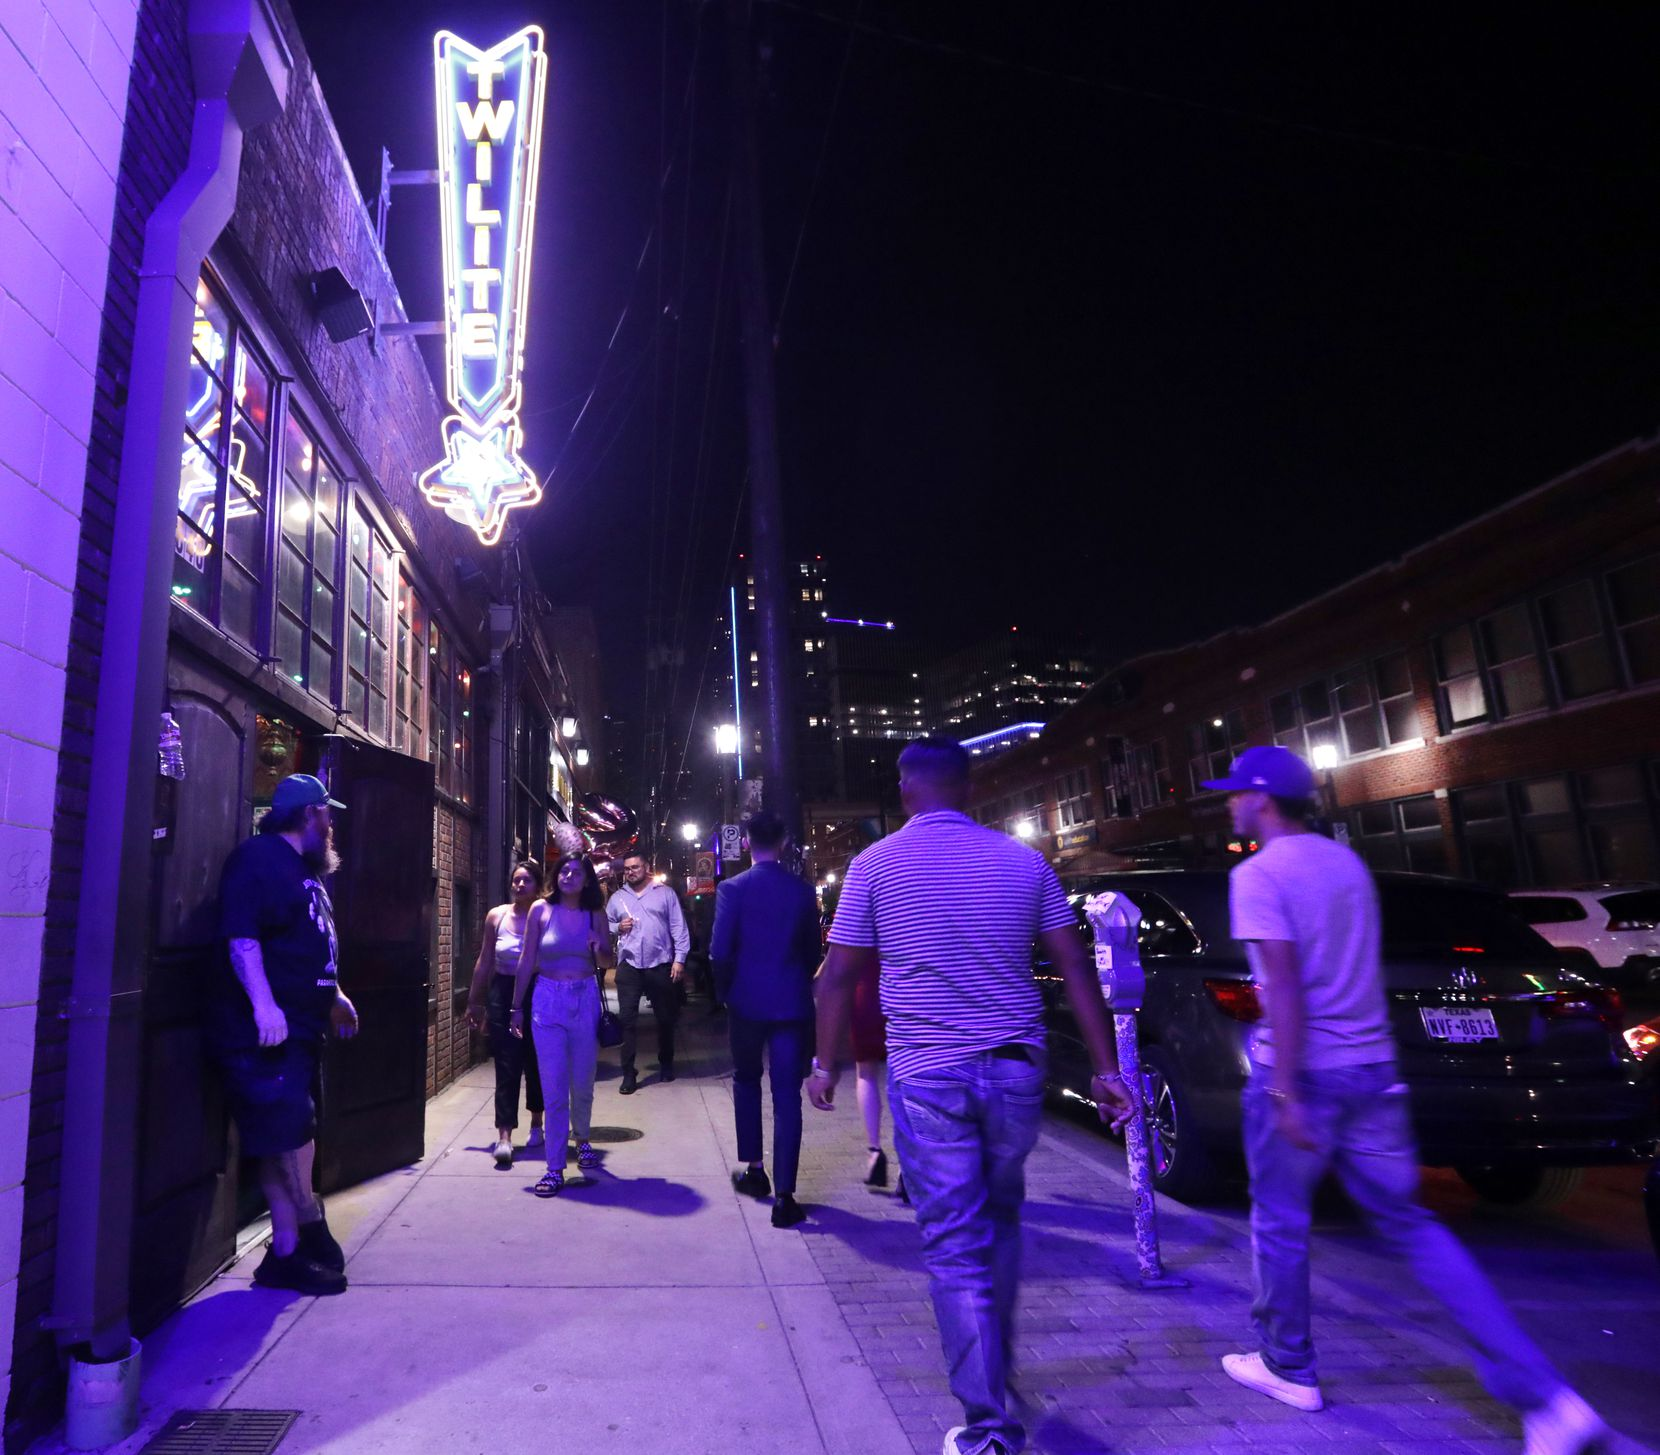 People look for food, drinks, music, and fun as they walk the streets of Deep Ellum in Dallas, TX, on Aug. 27, 2021.  (Jason Janik/Special Contributor)